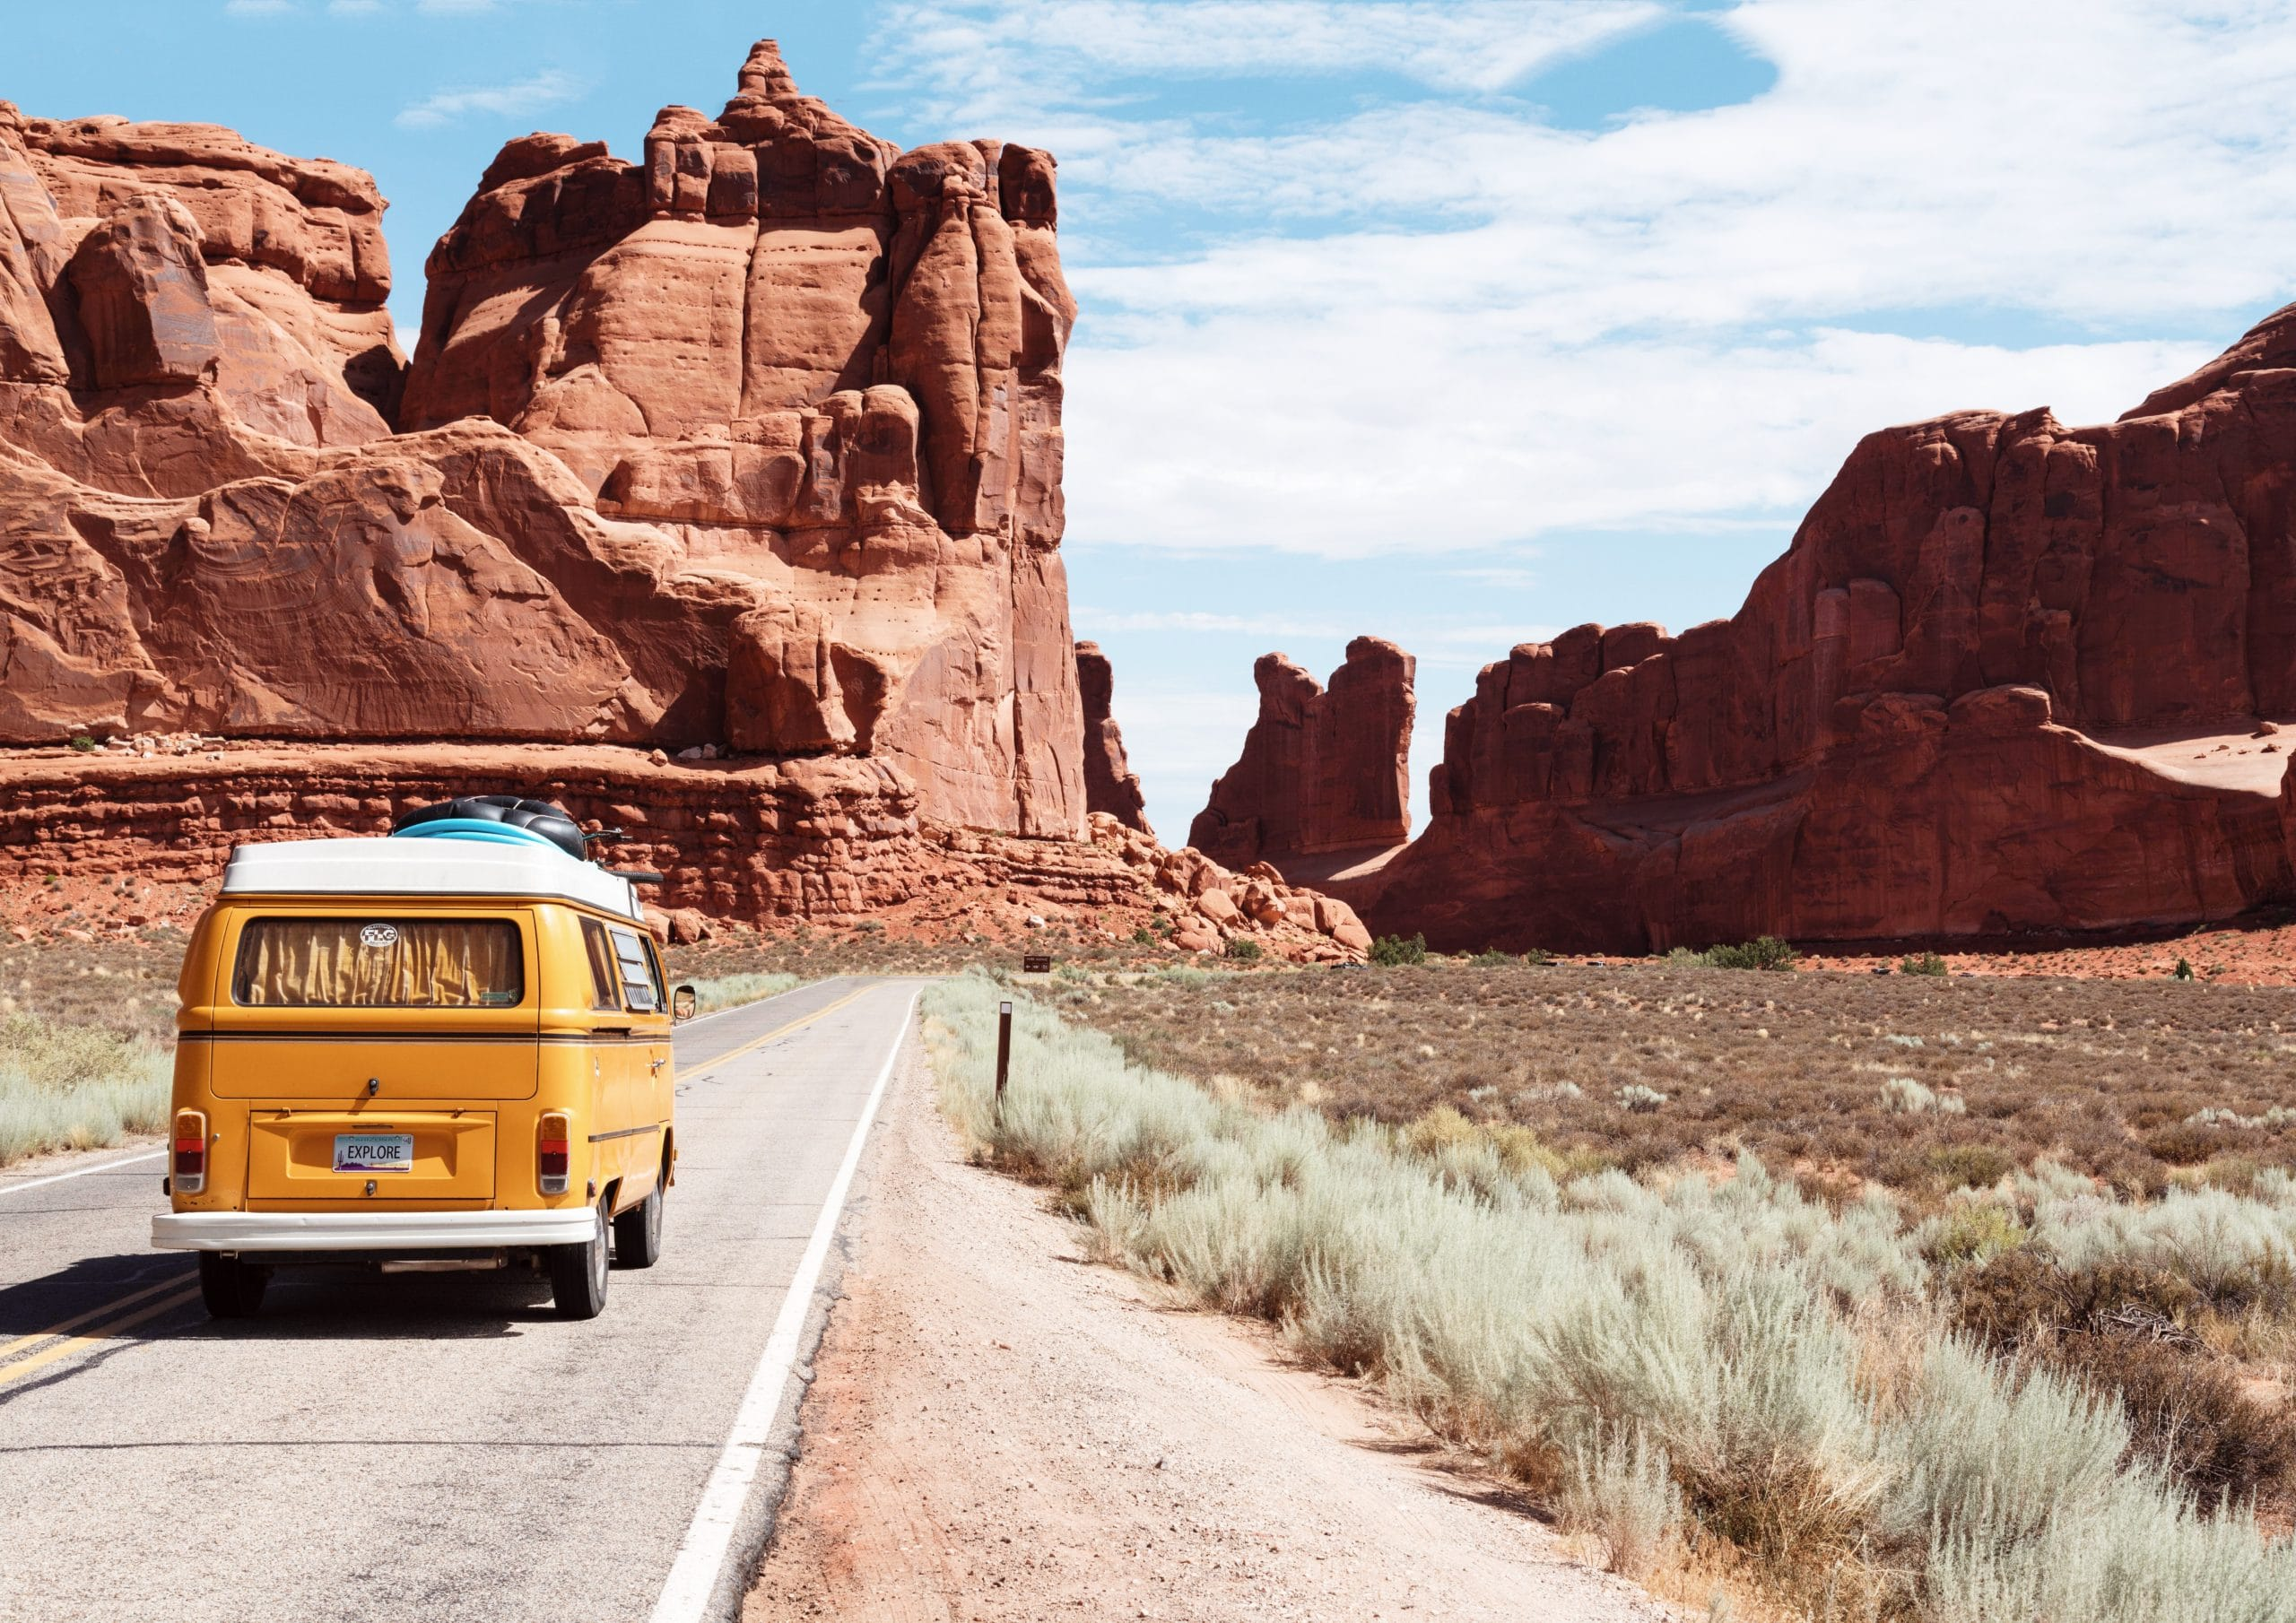 Staycation Ideas for Summer 2020 (That Are Instagram Worthy Too!)